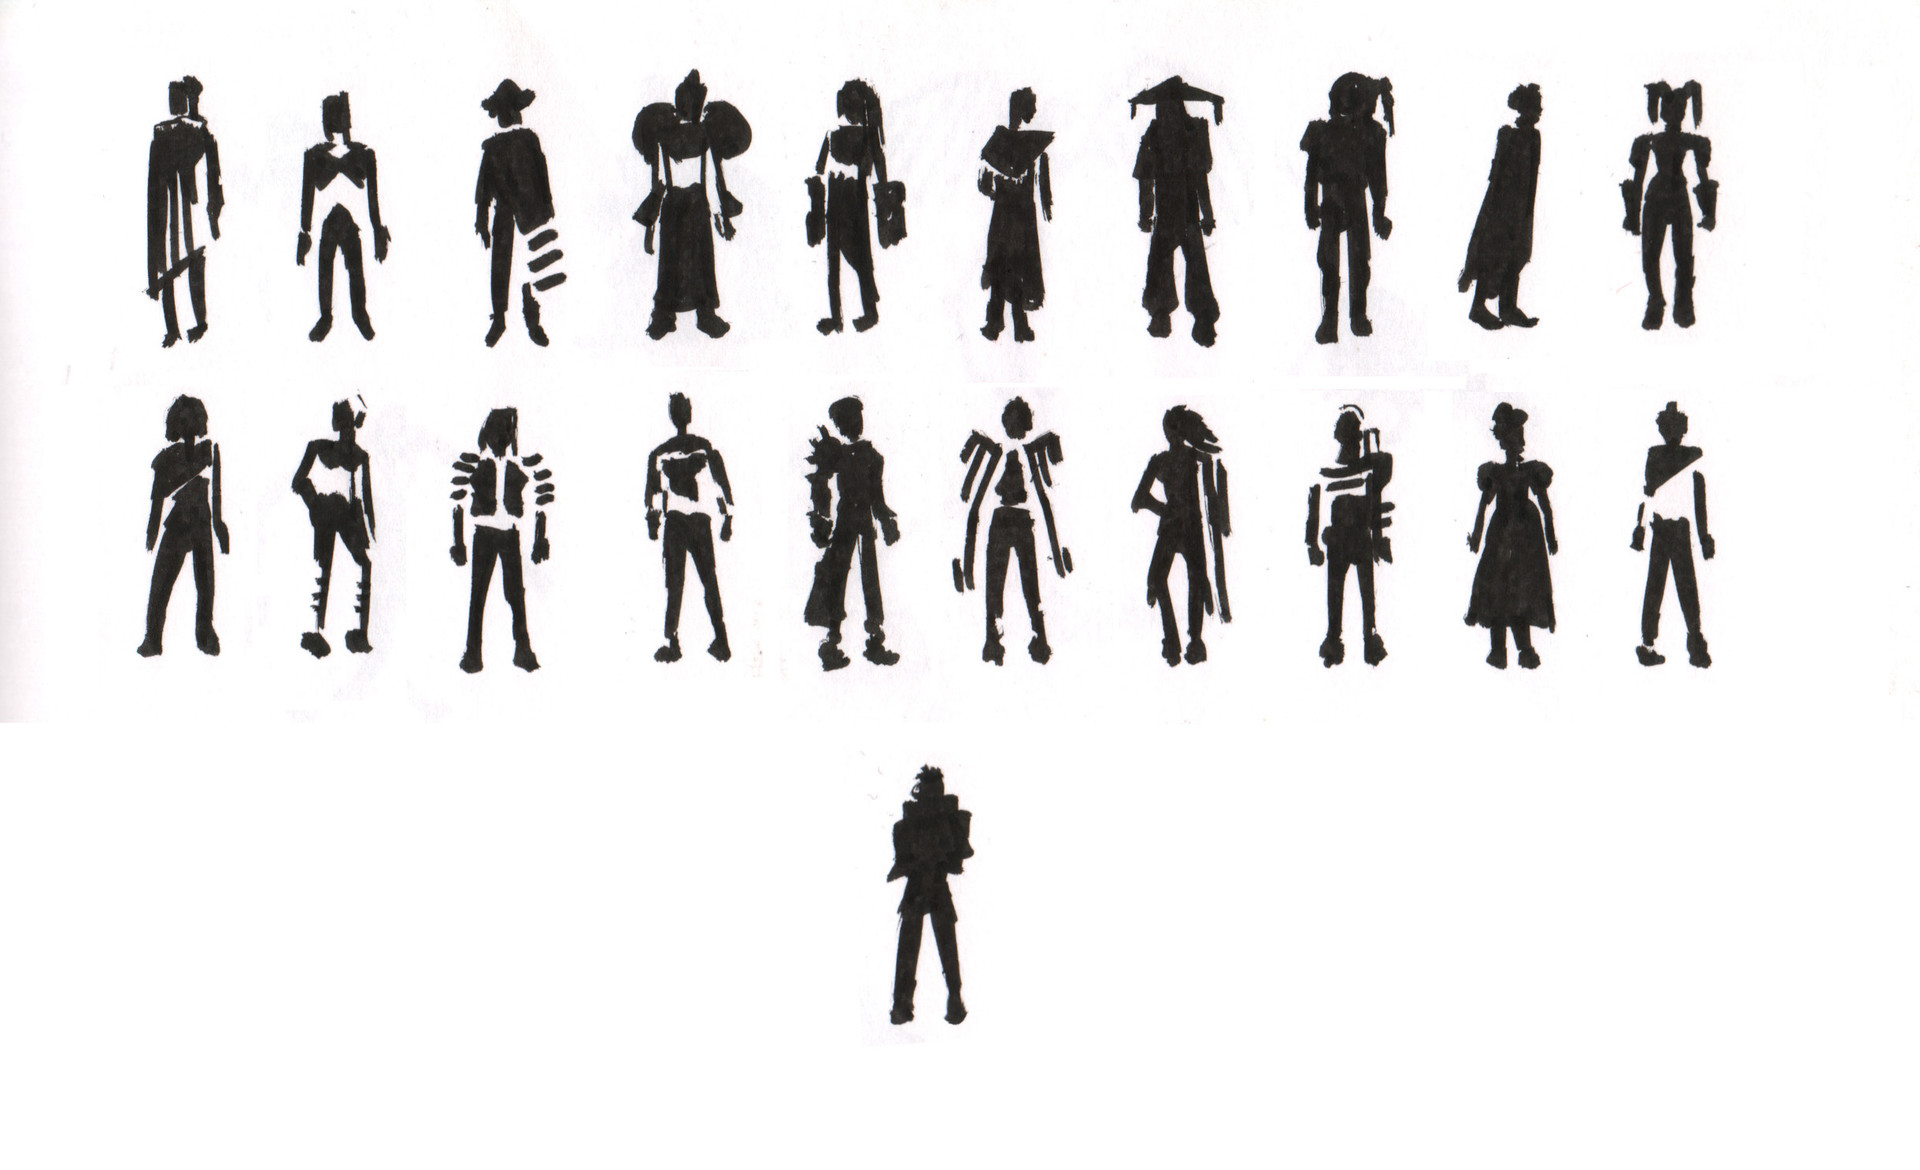 Andrew leung messiah silhouettes